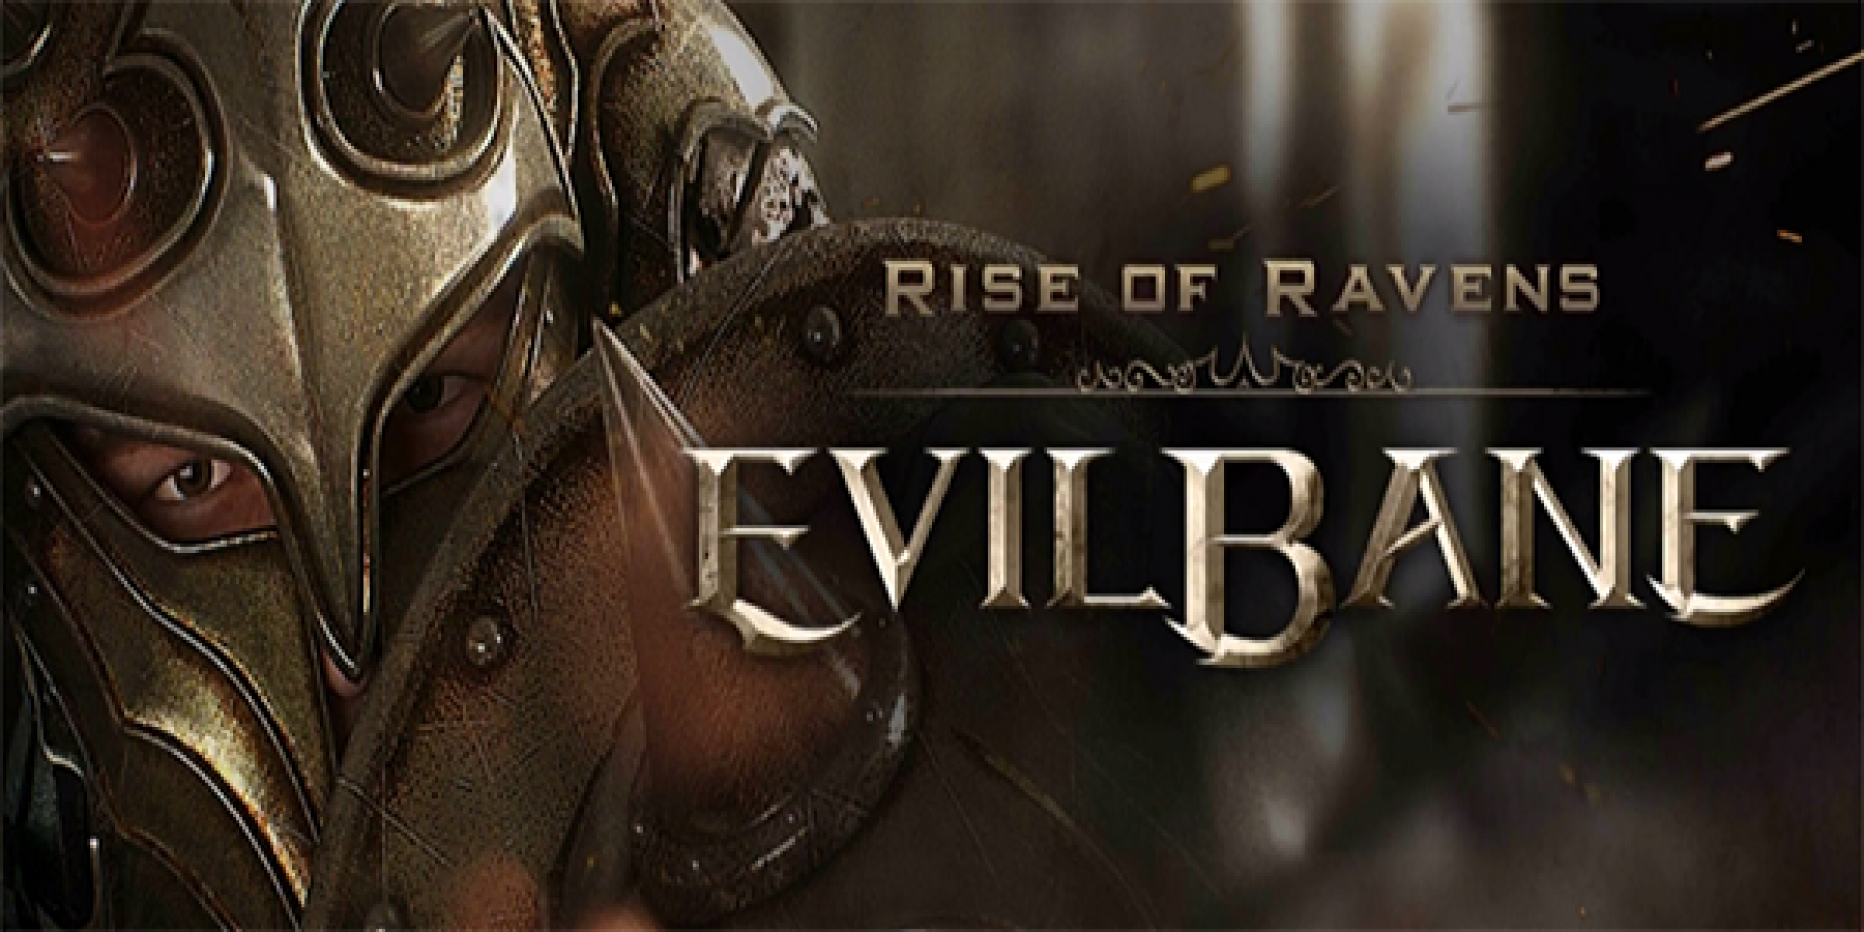 EvilBane Rise of Ravens Triche Astuce Generateur